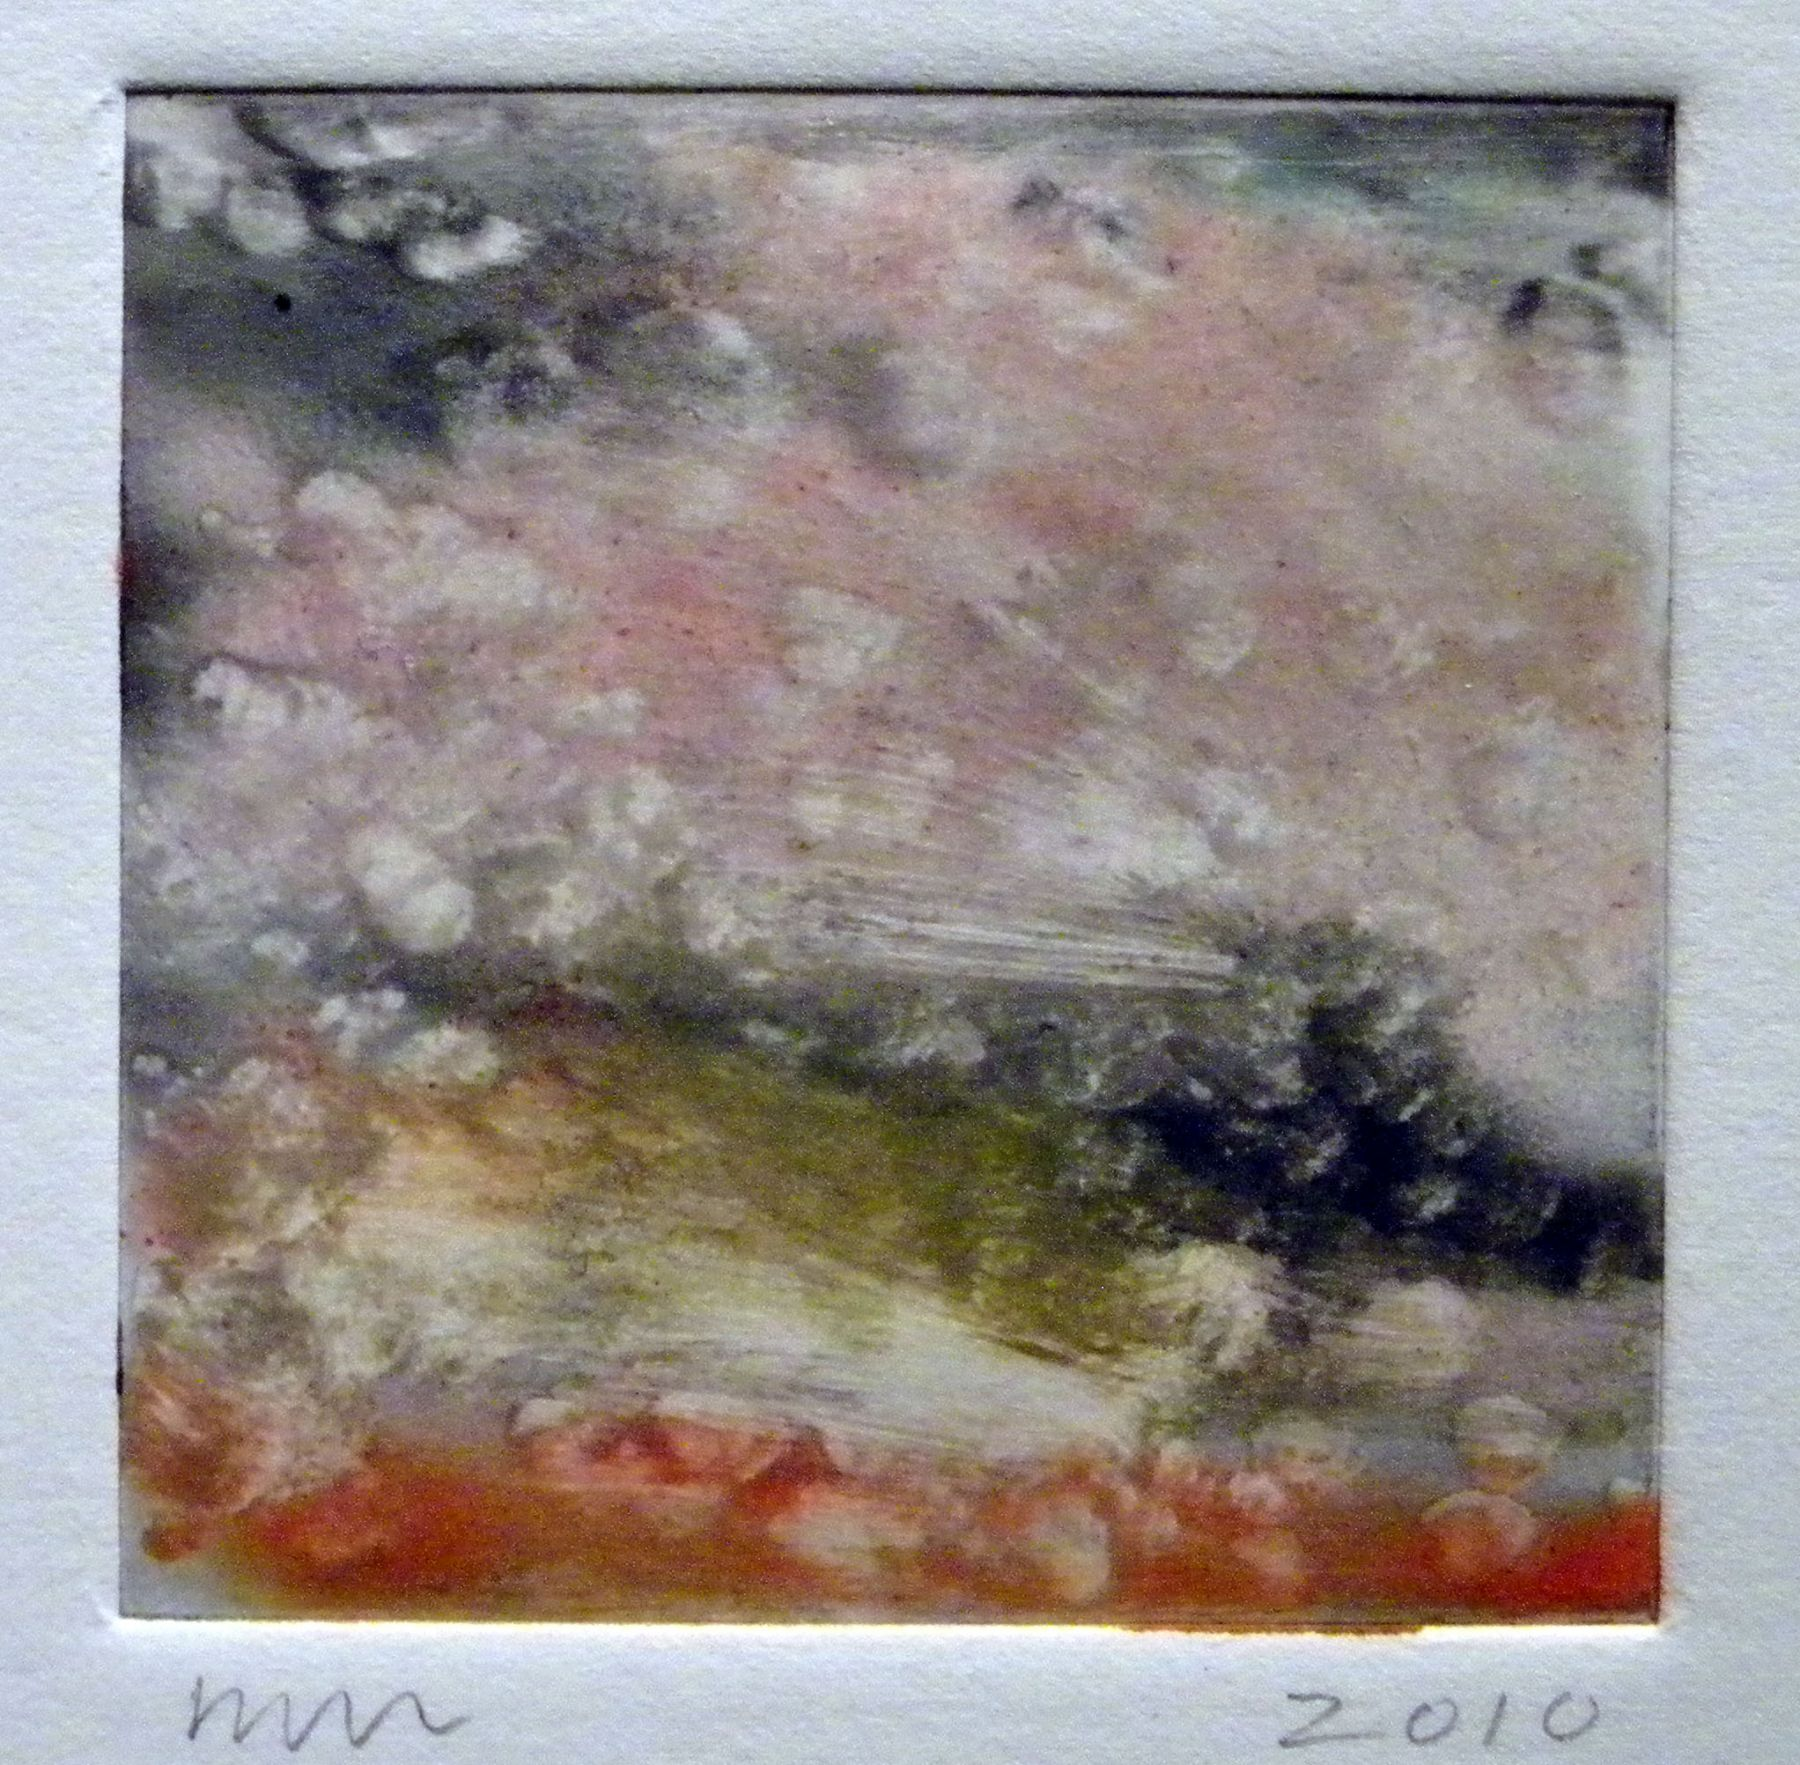 Wendy Mark  Red Yellow, Clouds, 2009  Monotype Plate 3 1/4 x 3 1/4 inches (8.3 x 8.3 cm)